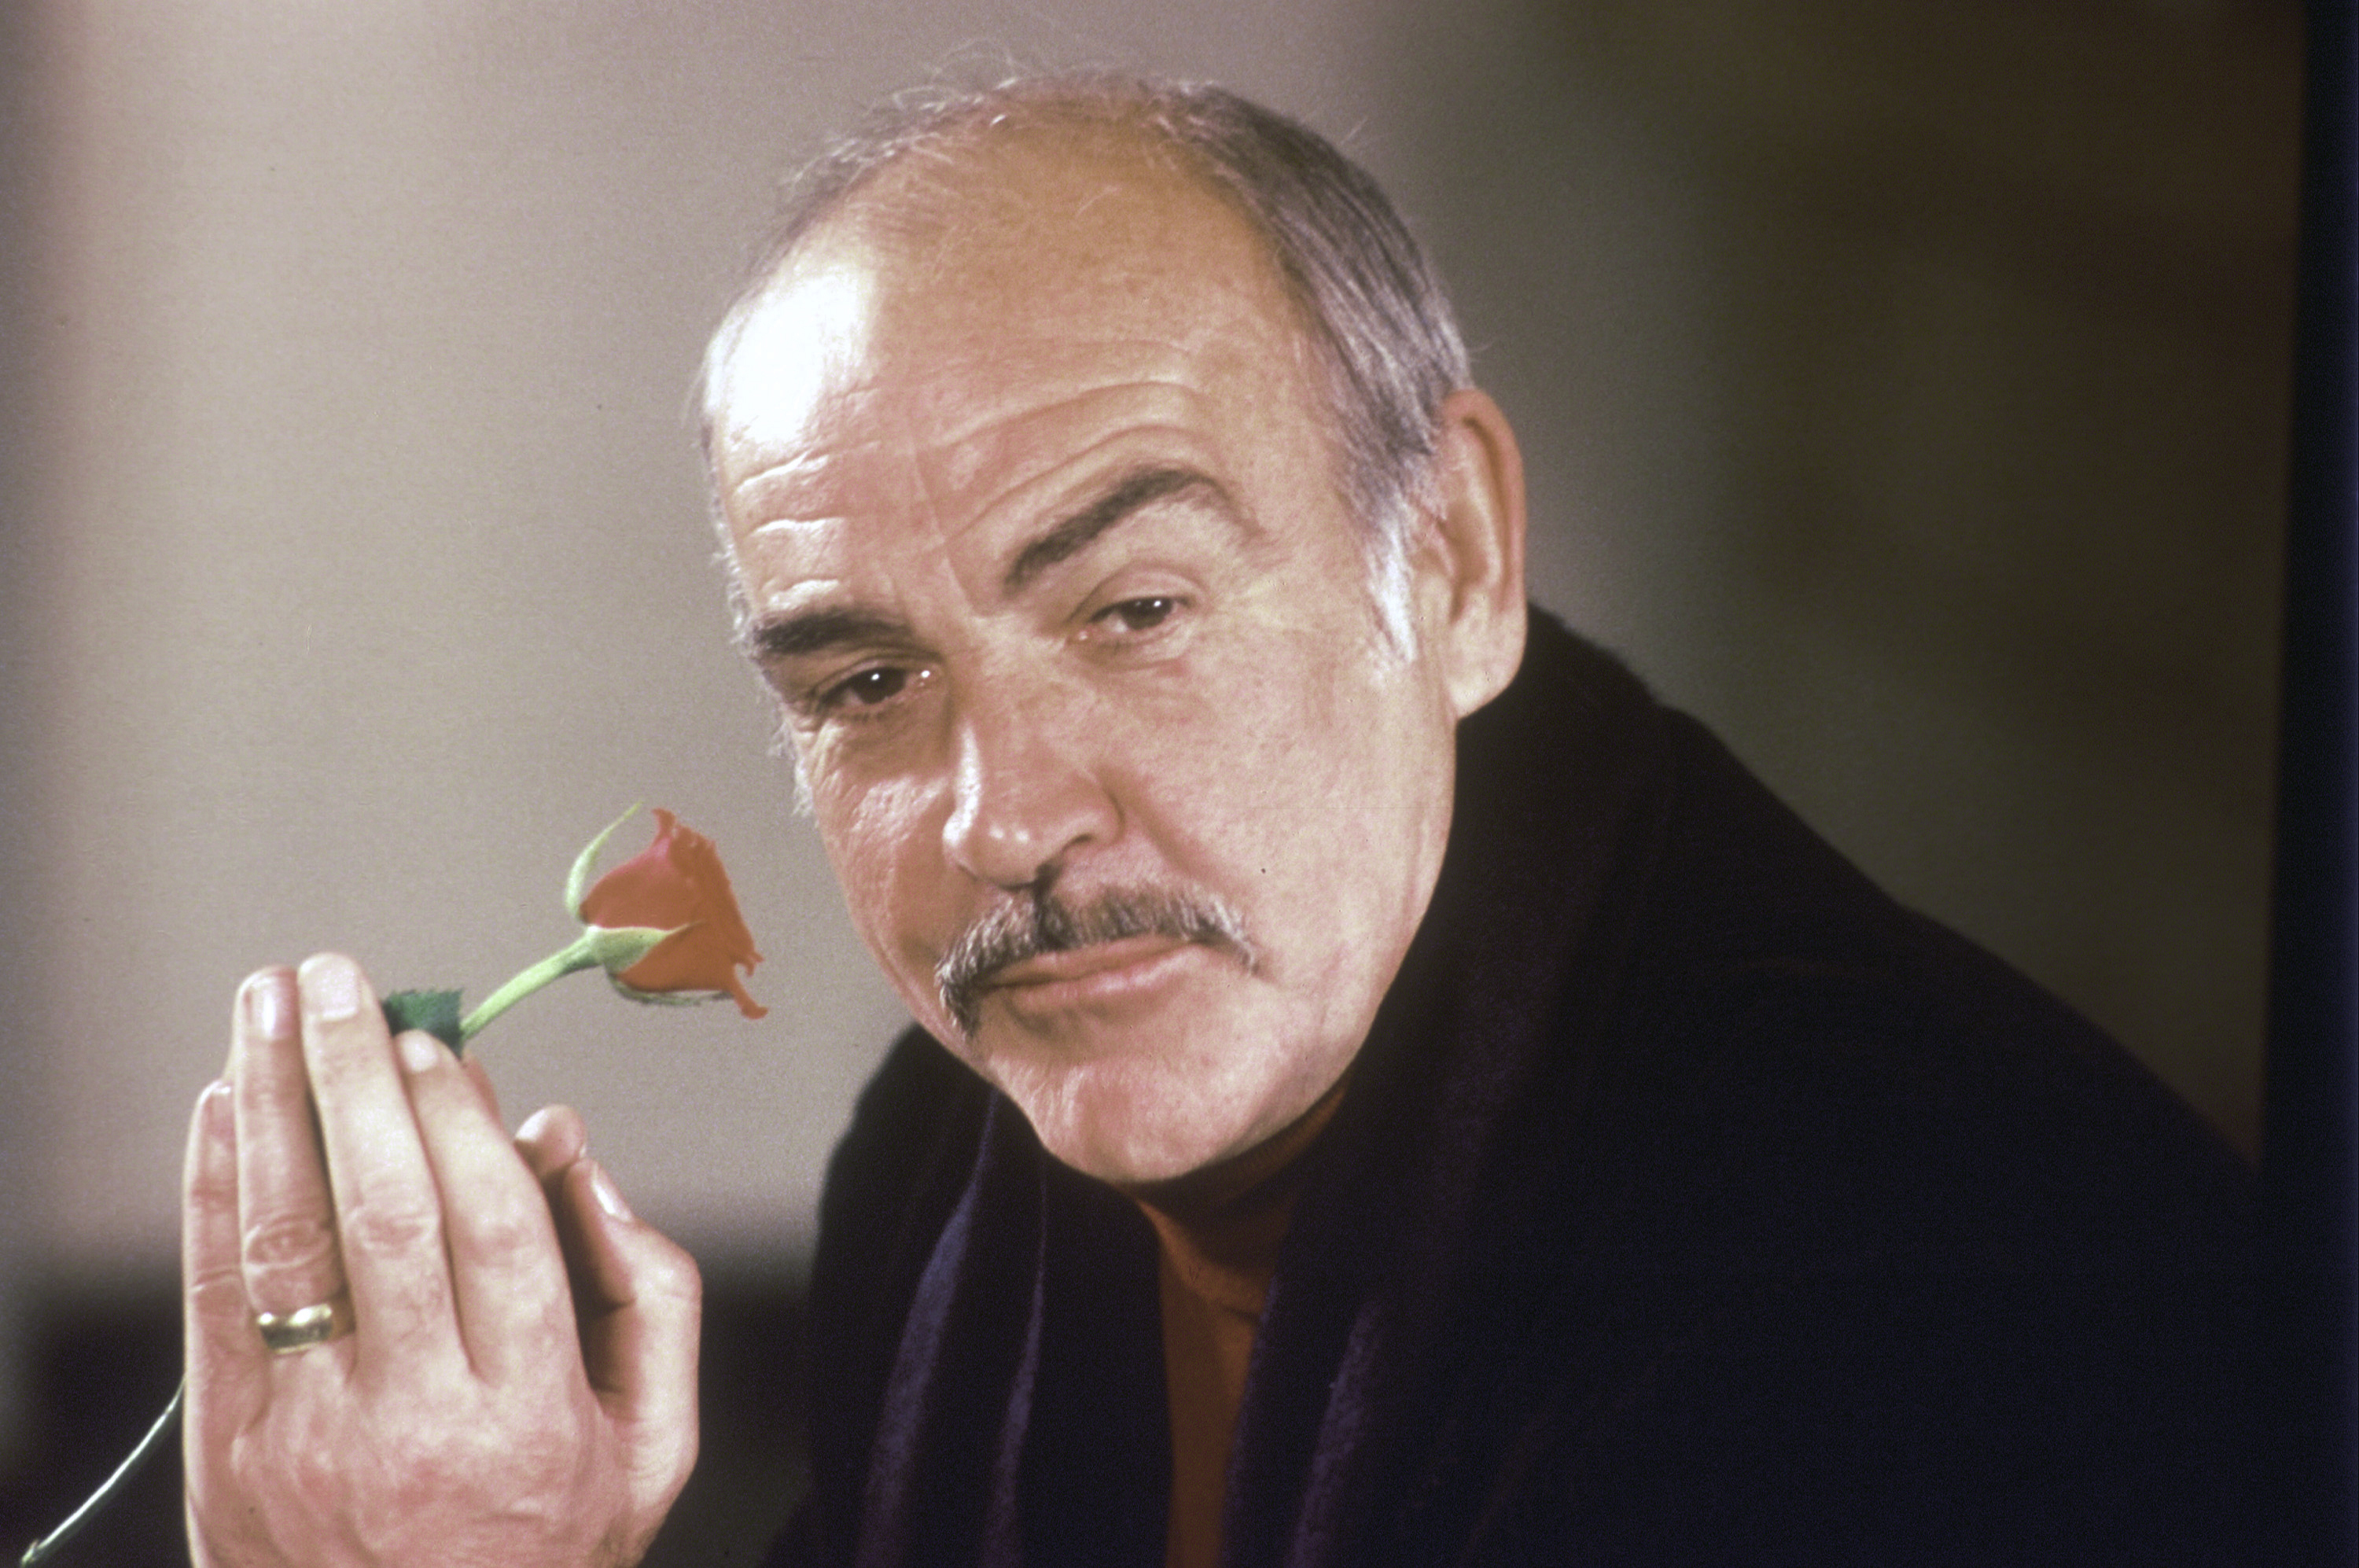 In this photo, actor Sean Connery holds a rose in his hand as he talks about his new movie  The Name of the Rose  at a news conference in London on Jan. 23, 1987.